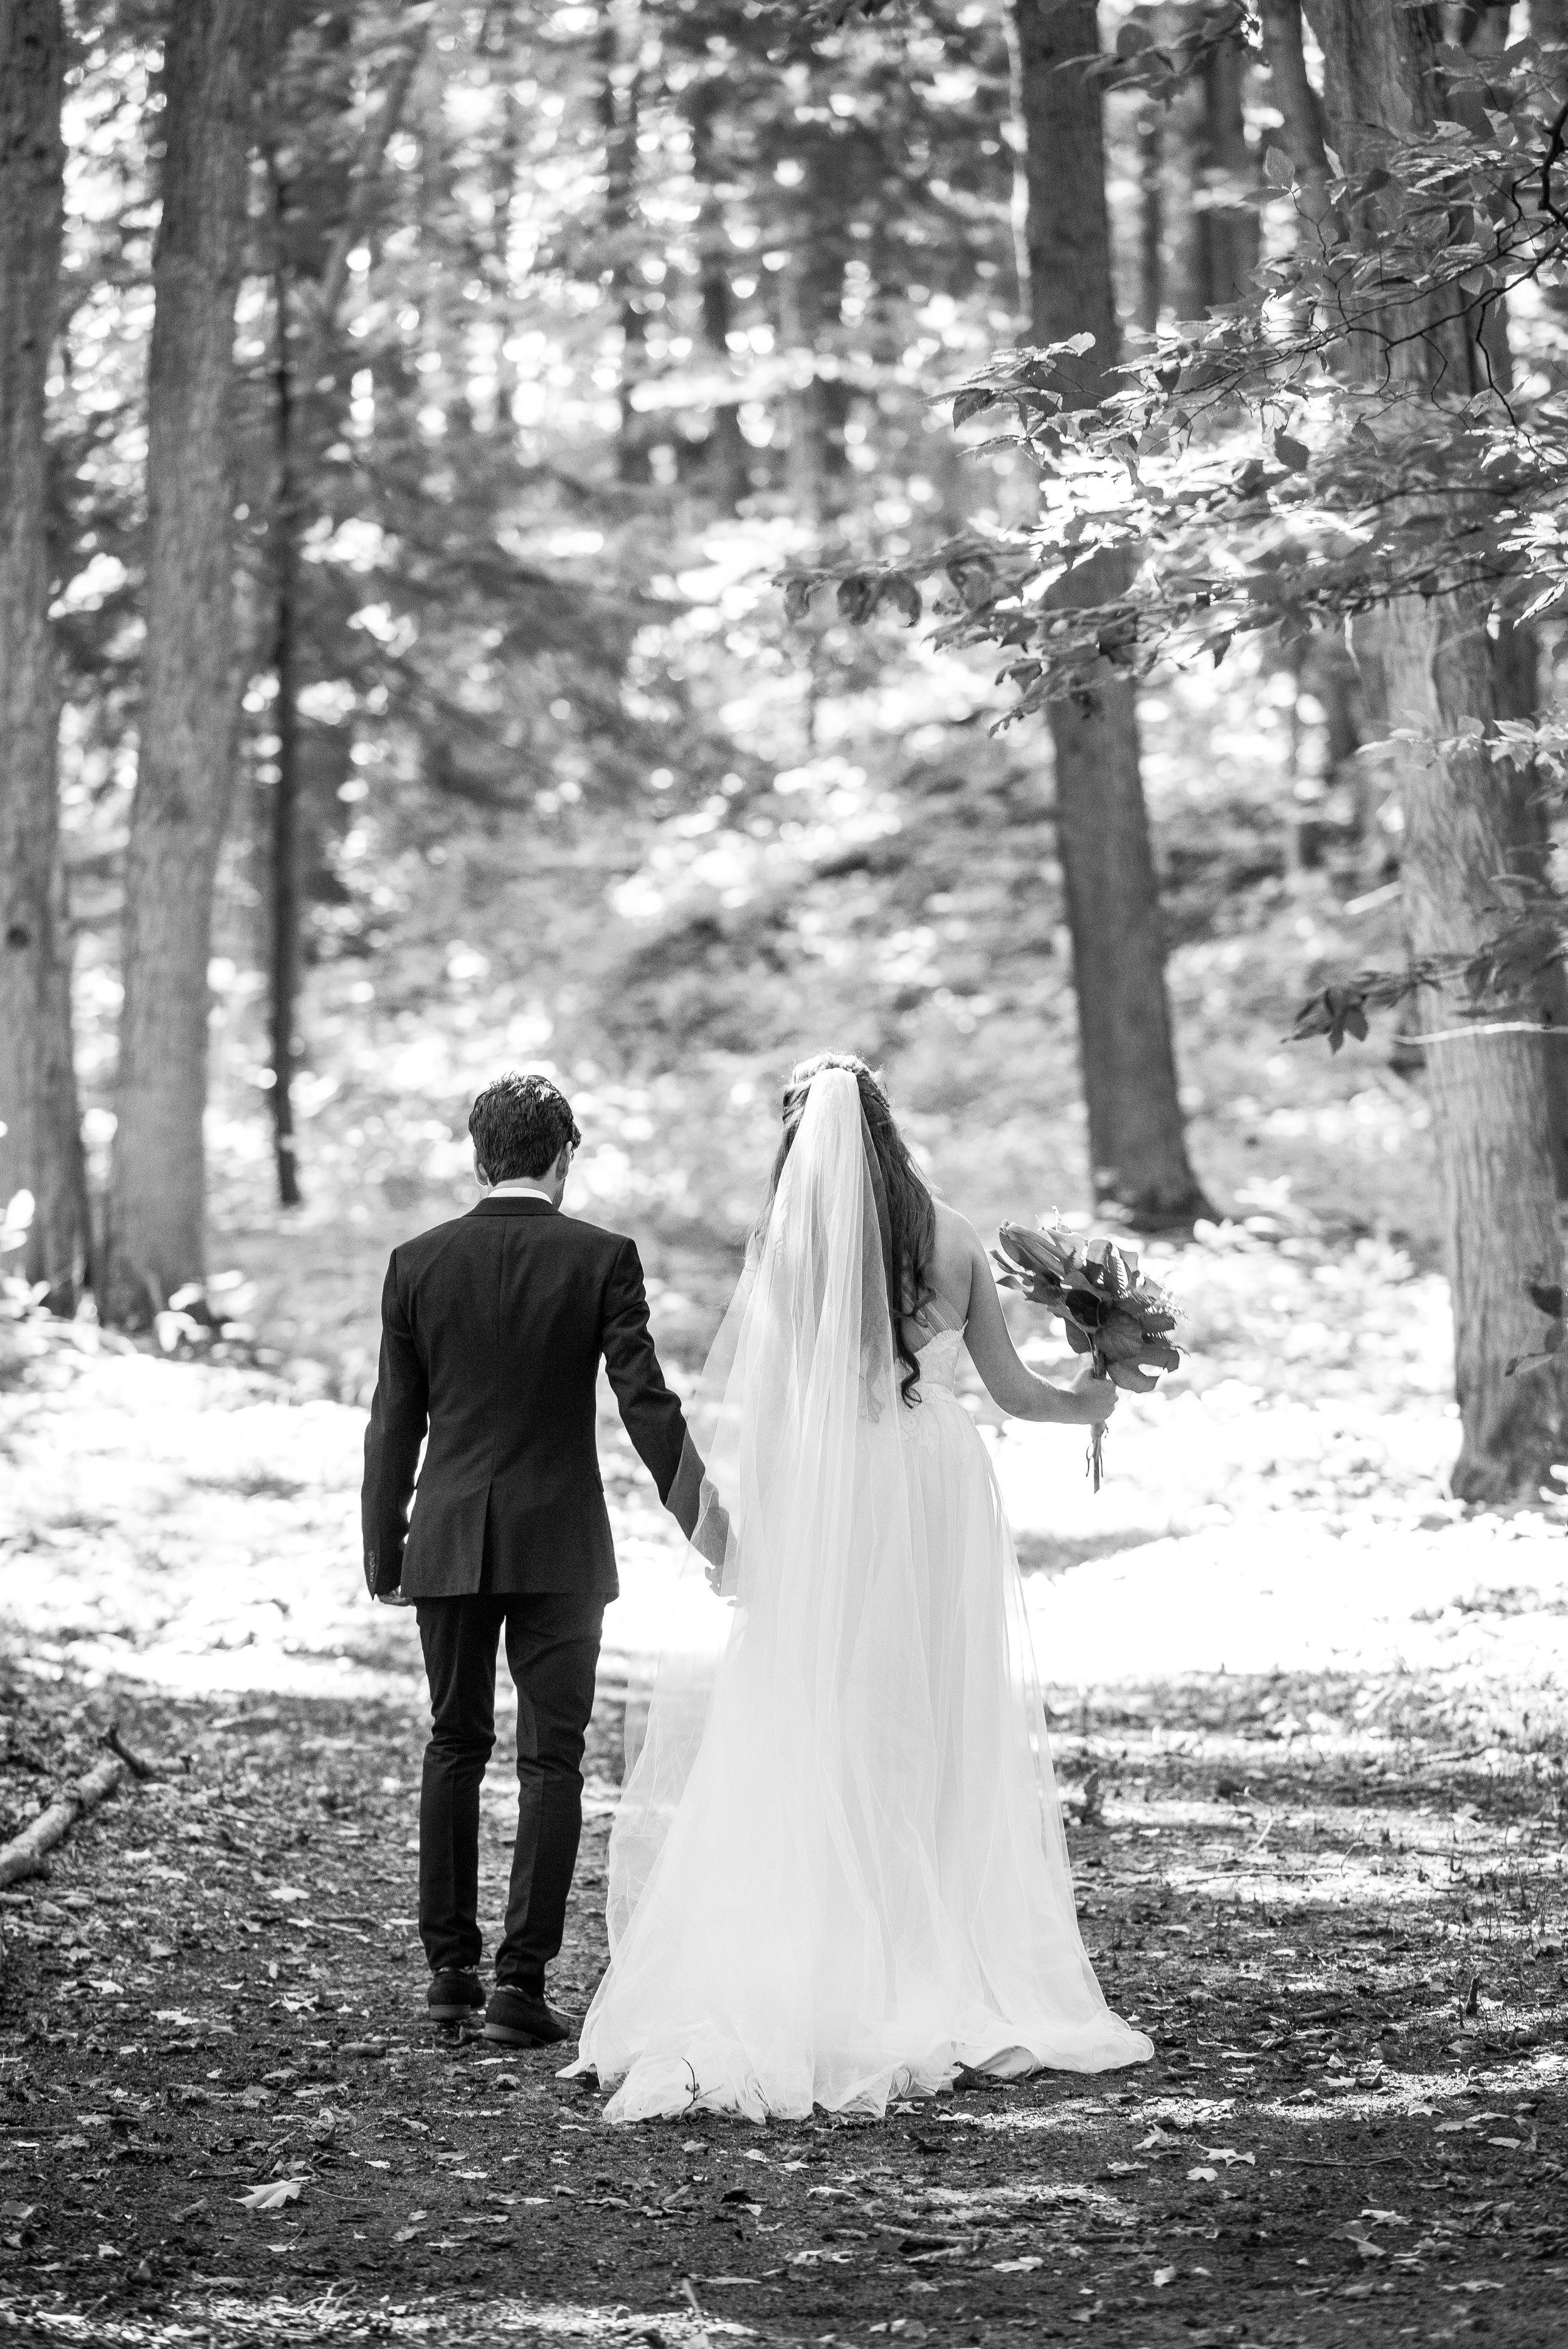 The bride and the groom go off into the forest. // Wedding photos by Karmel Kreative // Plant Based Bride